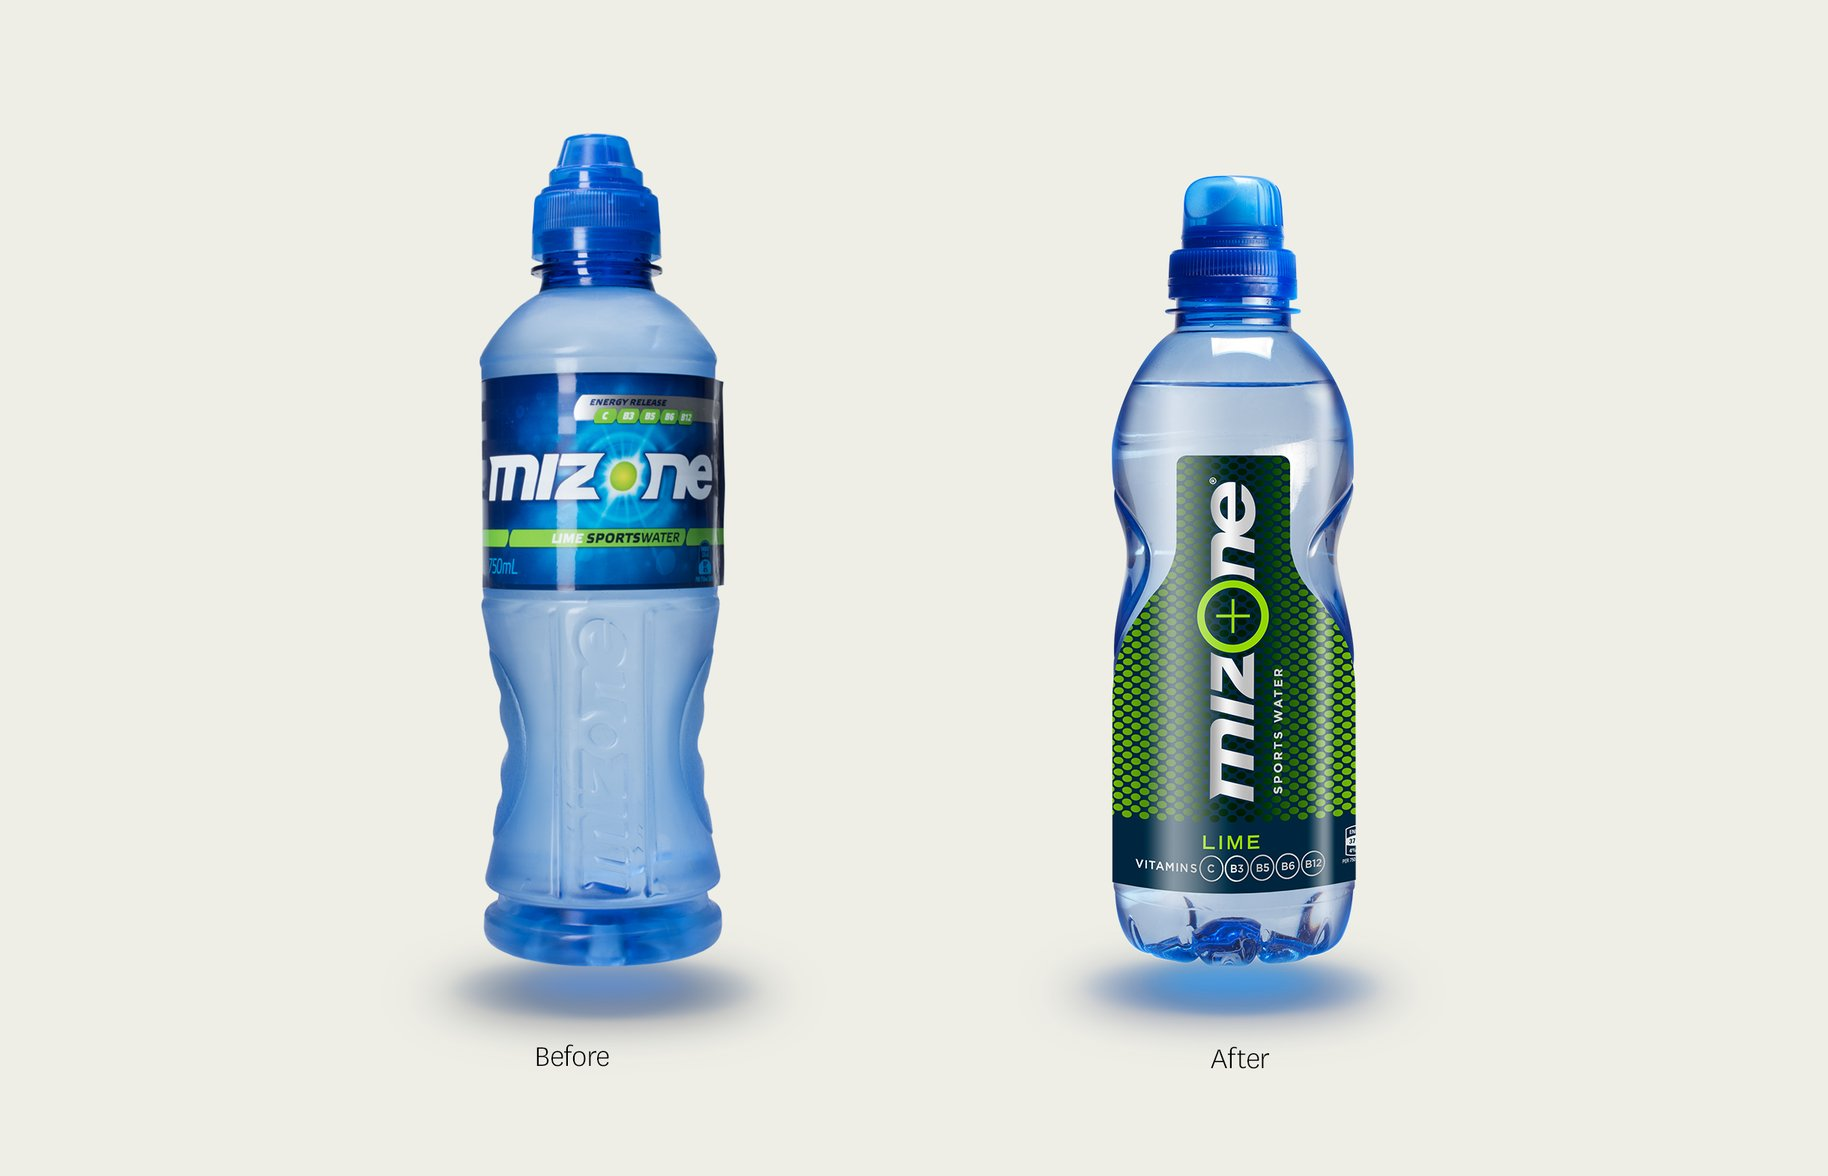 Mizone Before and After comparison